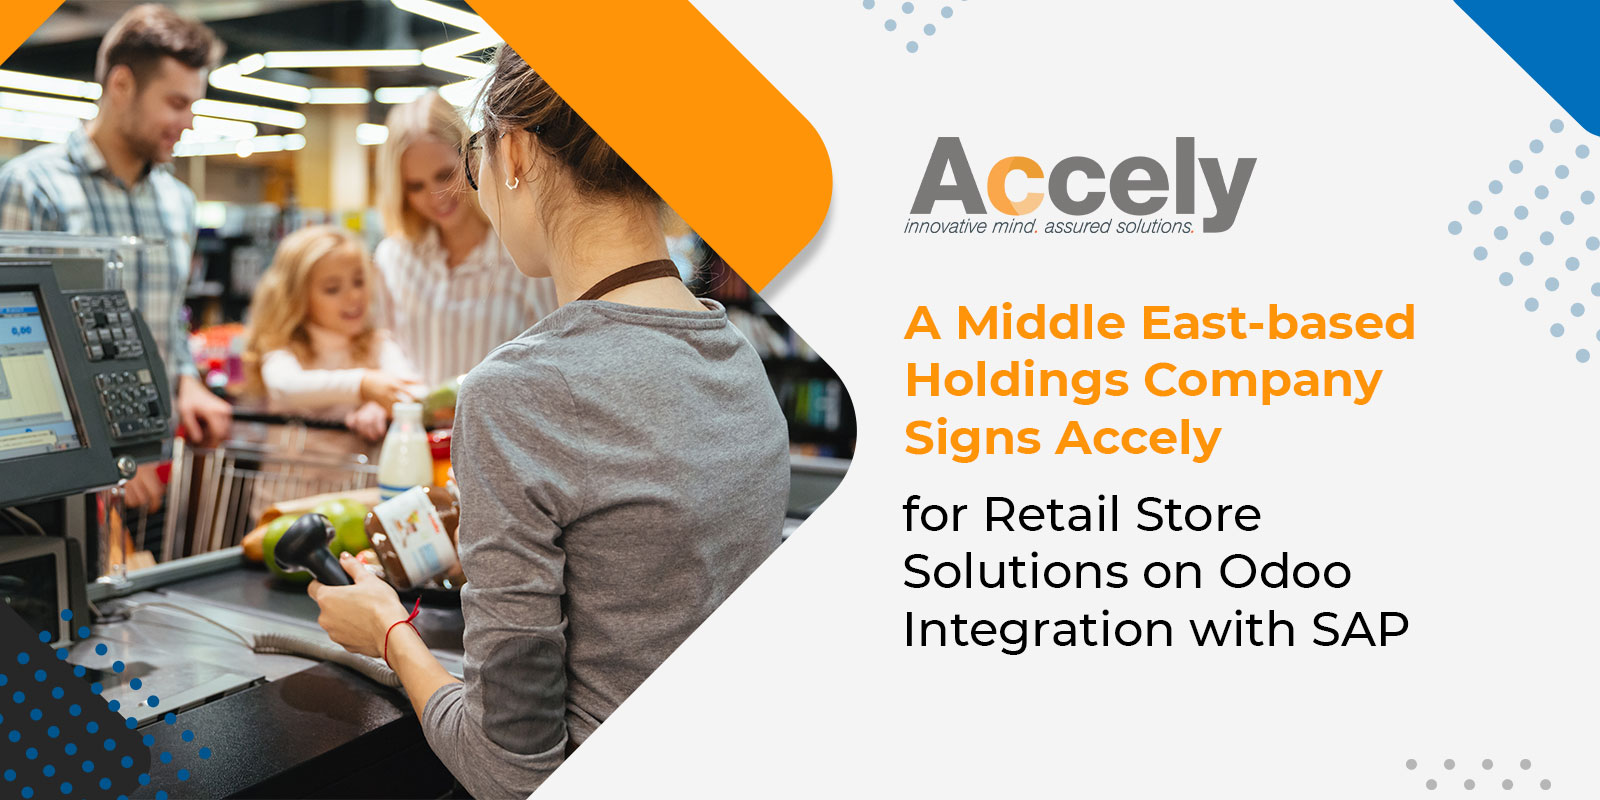 A Middle East-based Holdings Company Signs Accely for Retail Store Solutions on Odoo Integration with SAP